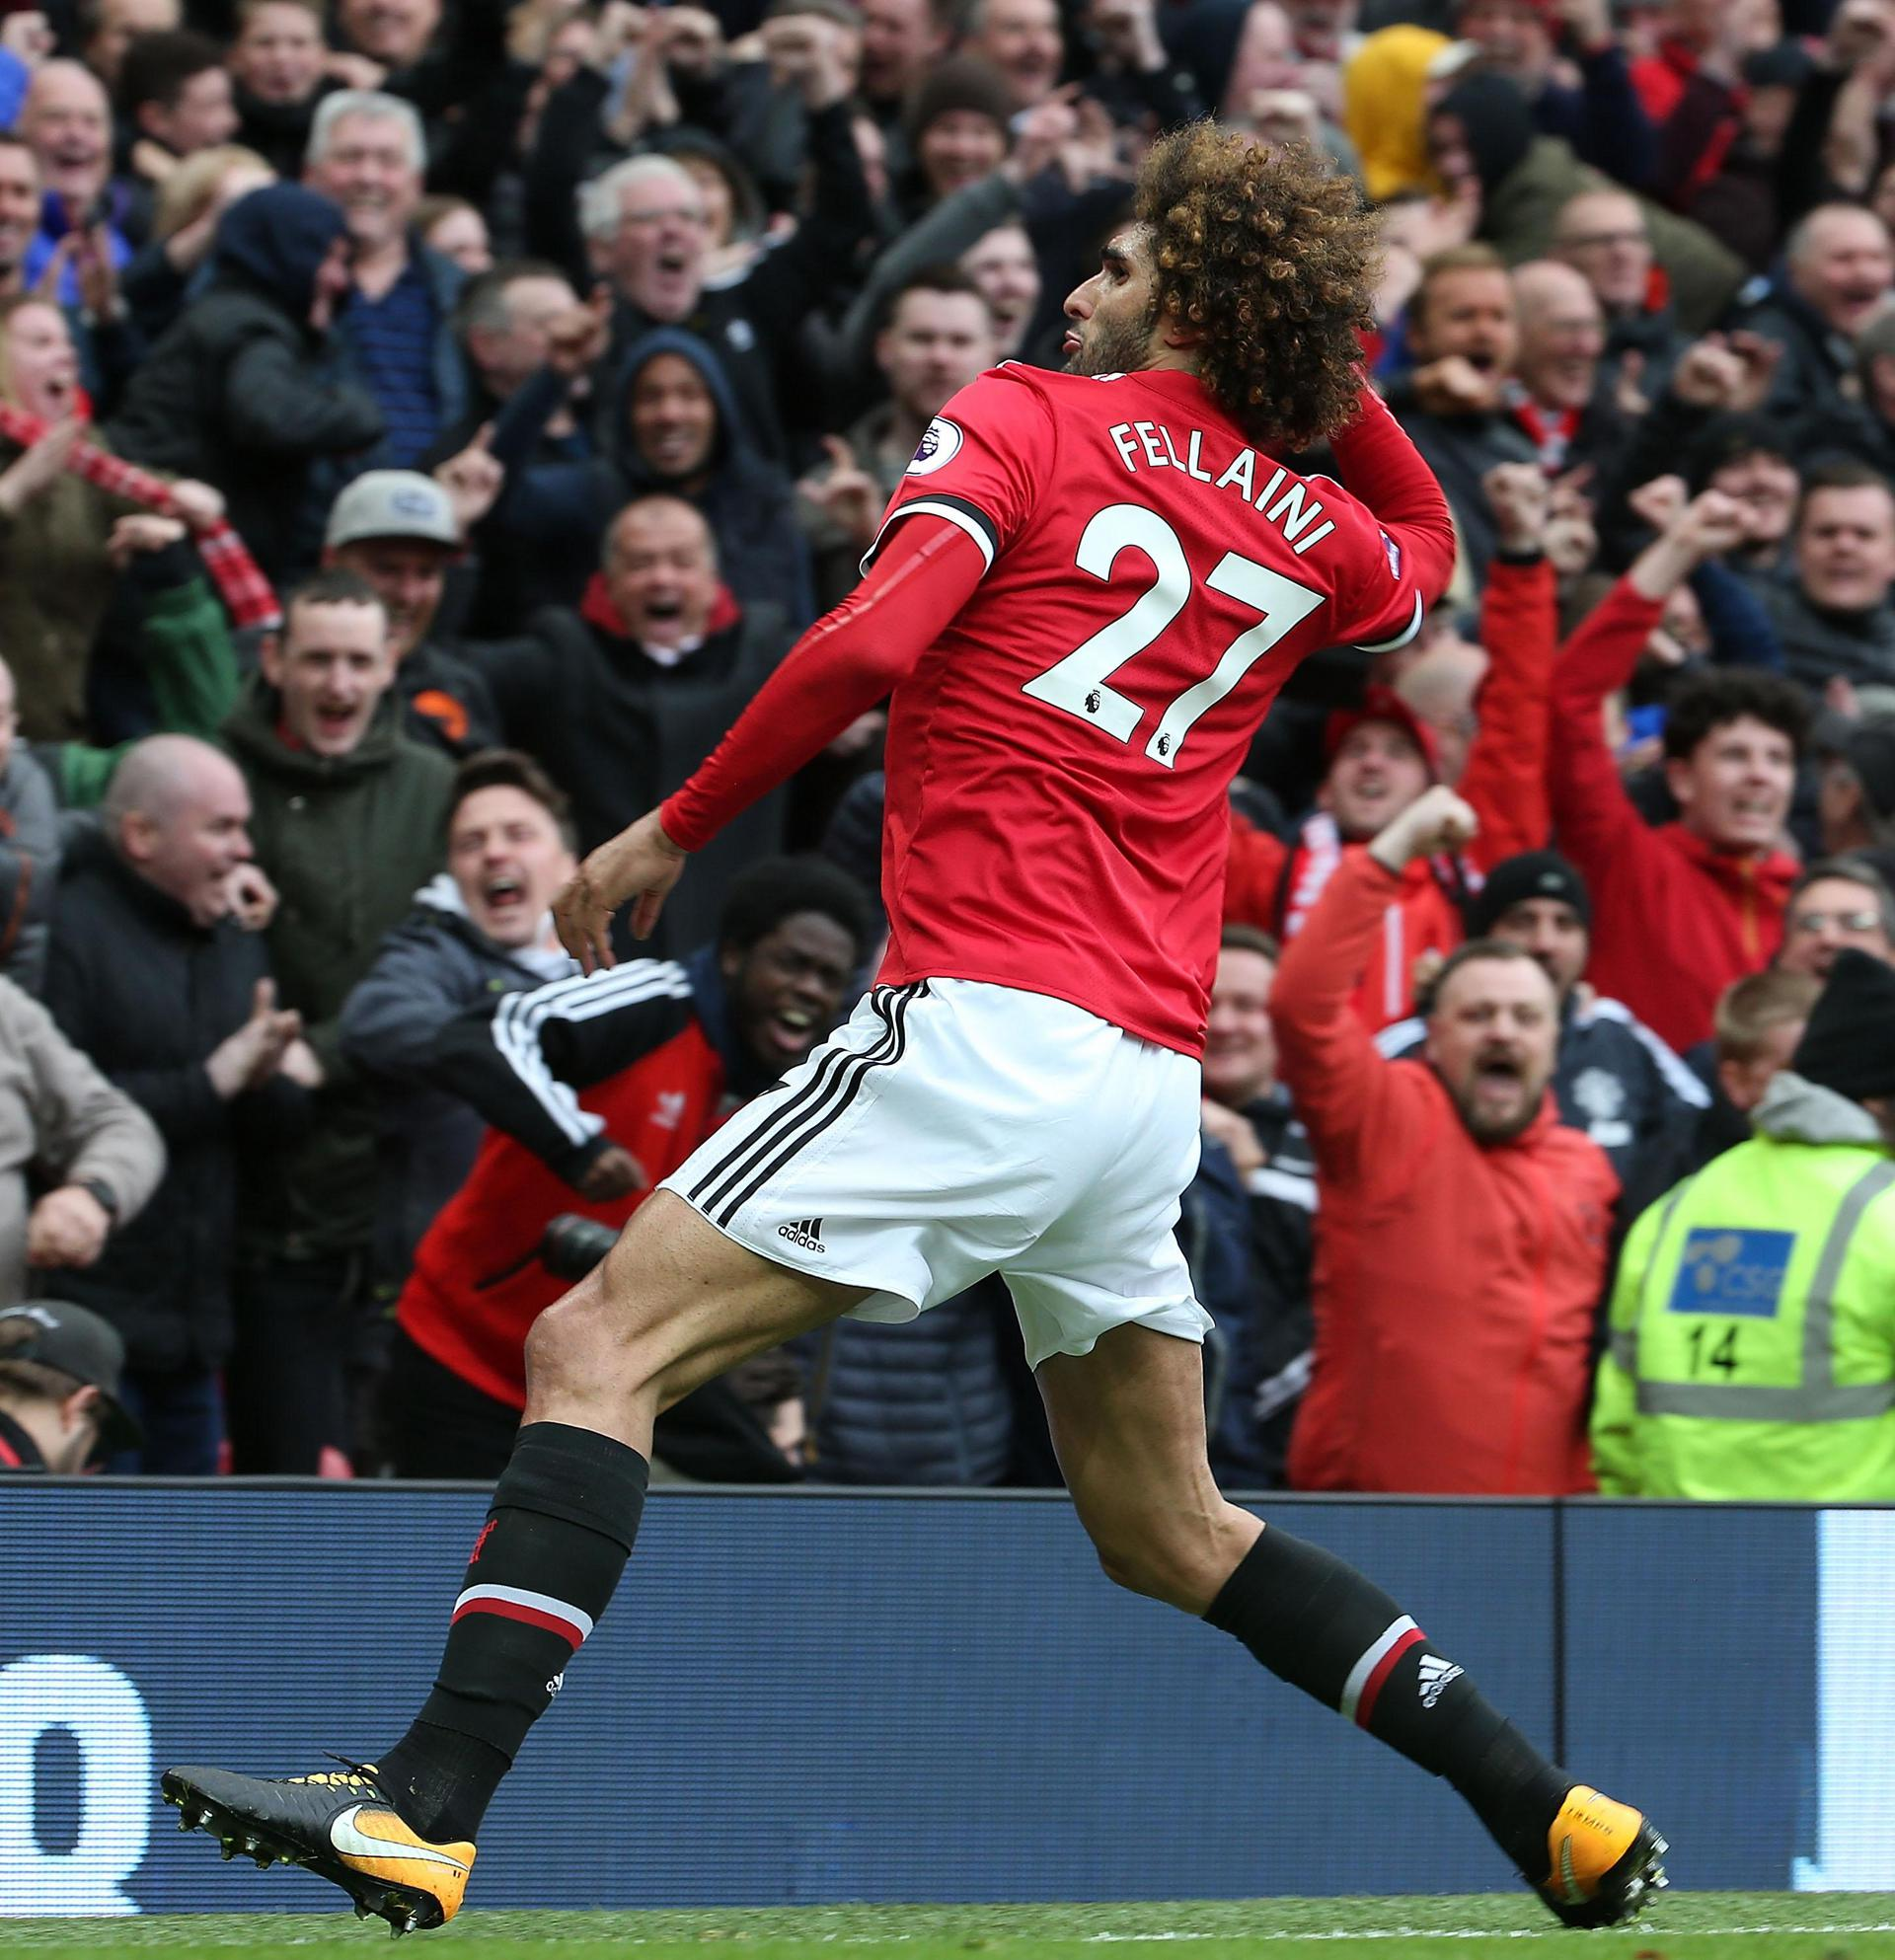 Fellaini celebrating his goal against Arsenal in front of the Stretford End.